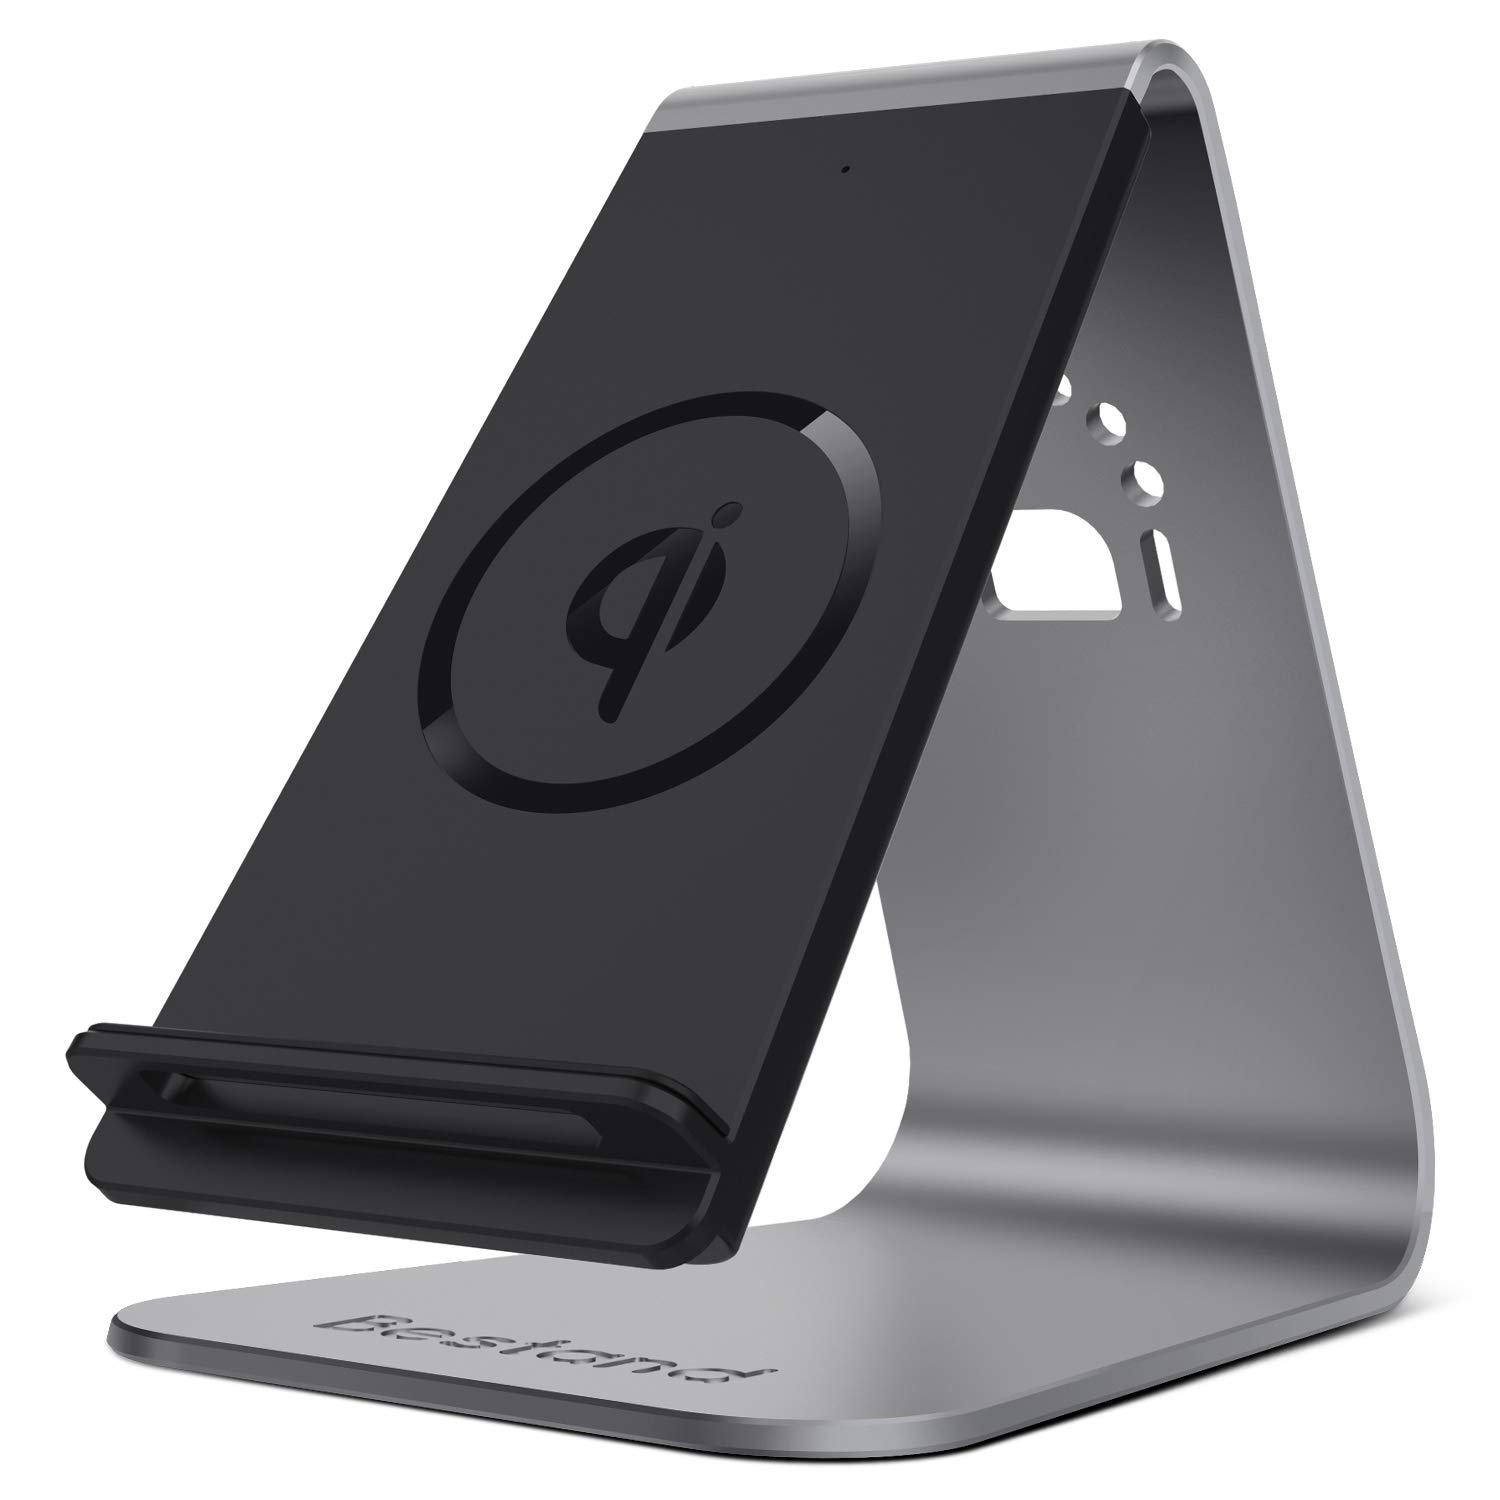 Bestand Qi Wireless Charger, Wireless Charging Stand & Holder Compatible with iPhone XR/XS Max/XS/X / 8/8 Plus, Samsung Galaxy S10/S9/S9+, Grey